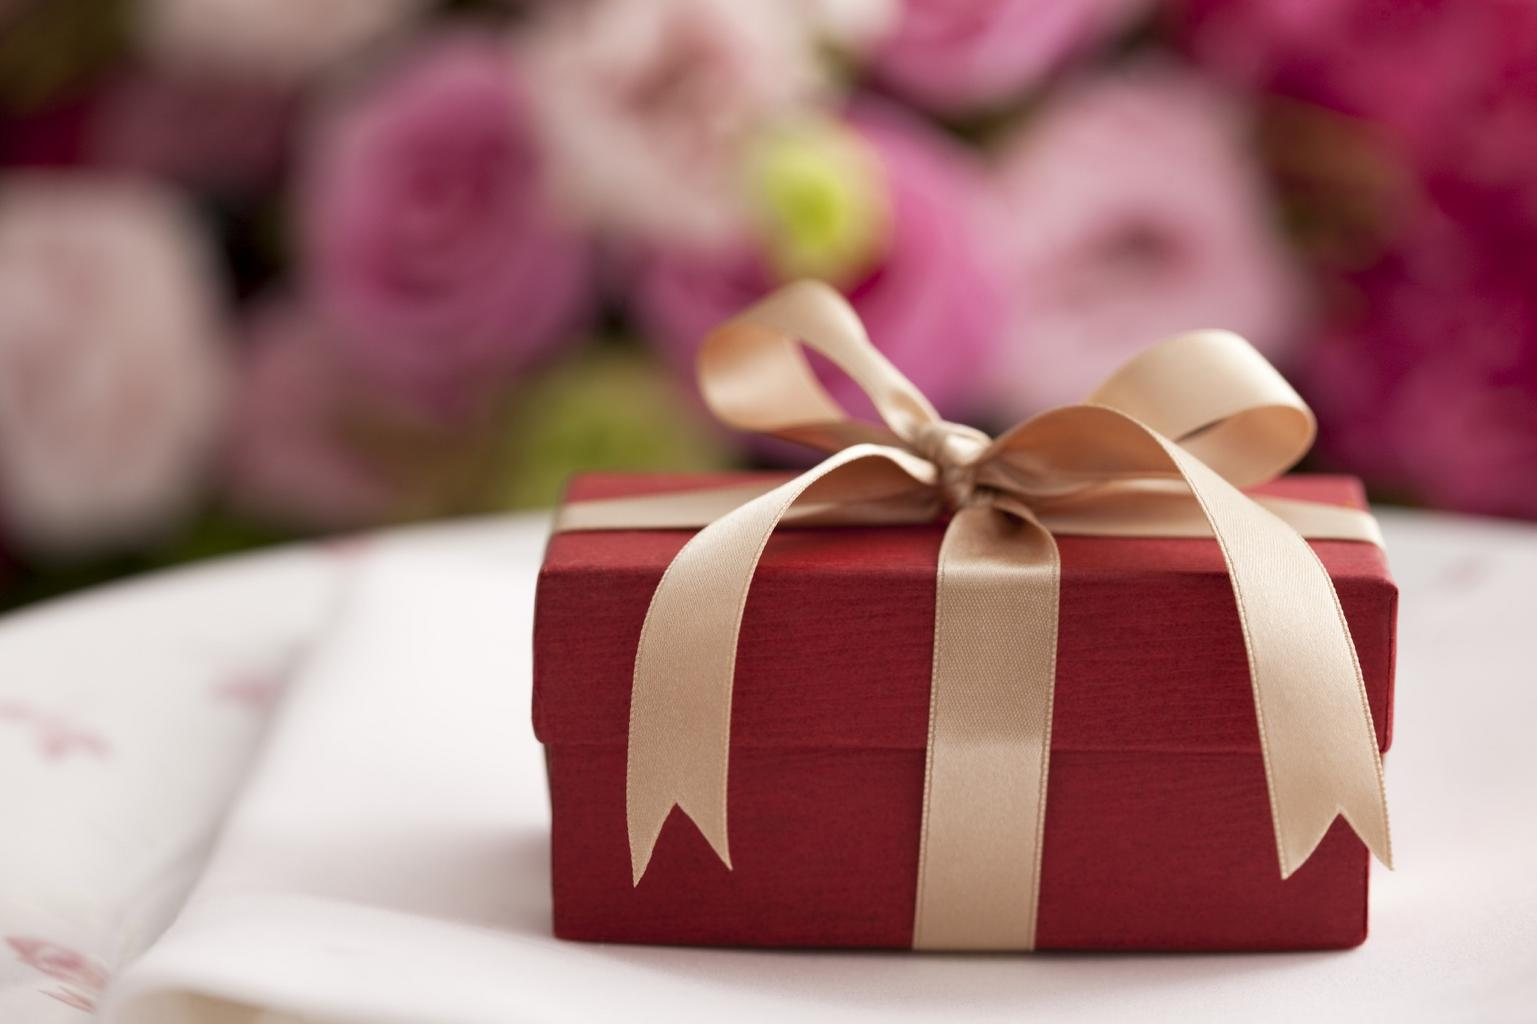 Wedding Gifts: A Modern Dilemma The Reflective Bride